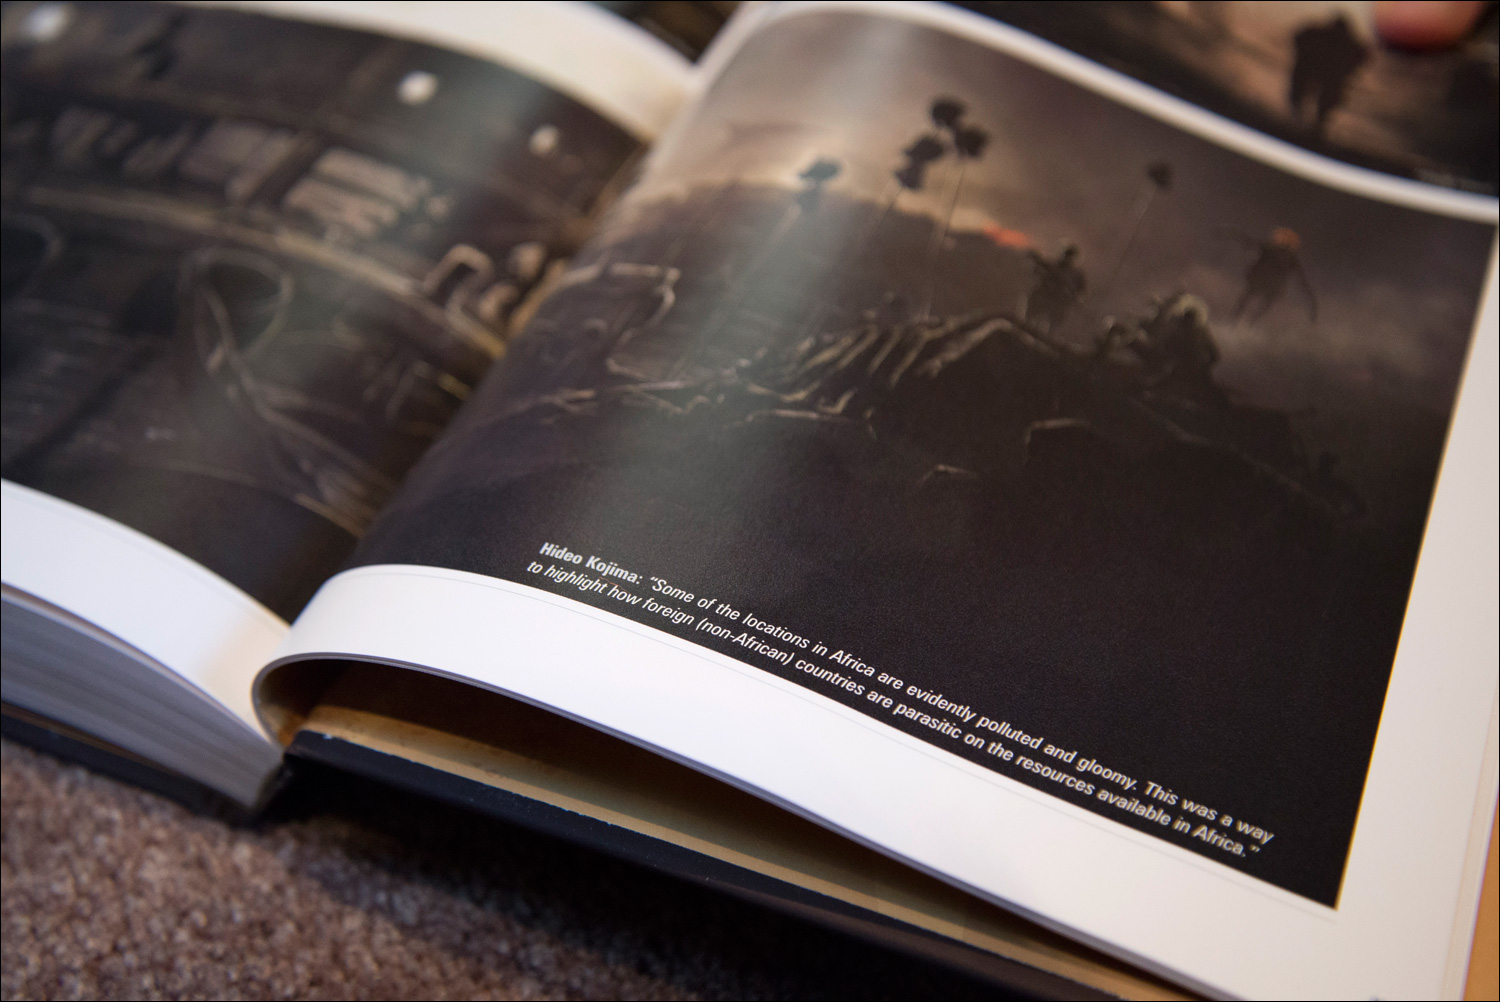 Metal-Gear-Solid-V-The-Phantom-Pain-Collector's-Edition-Guide-Artwork-Gallery-Kojima-Commentary